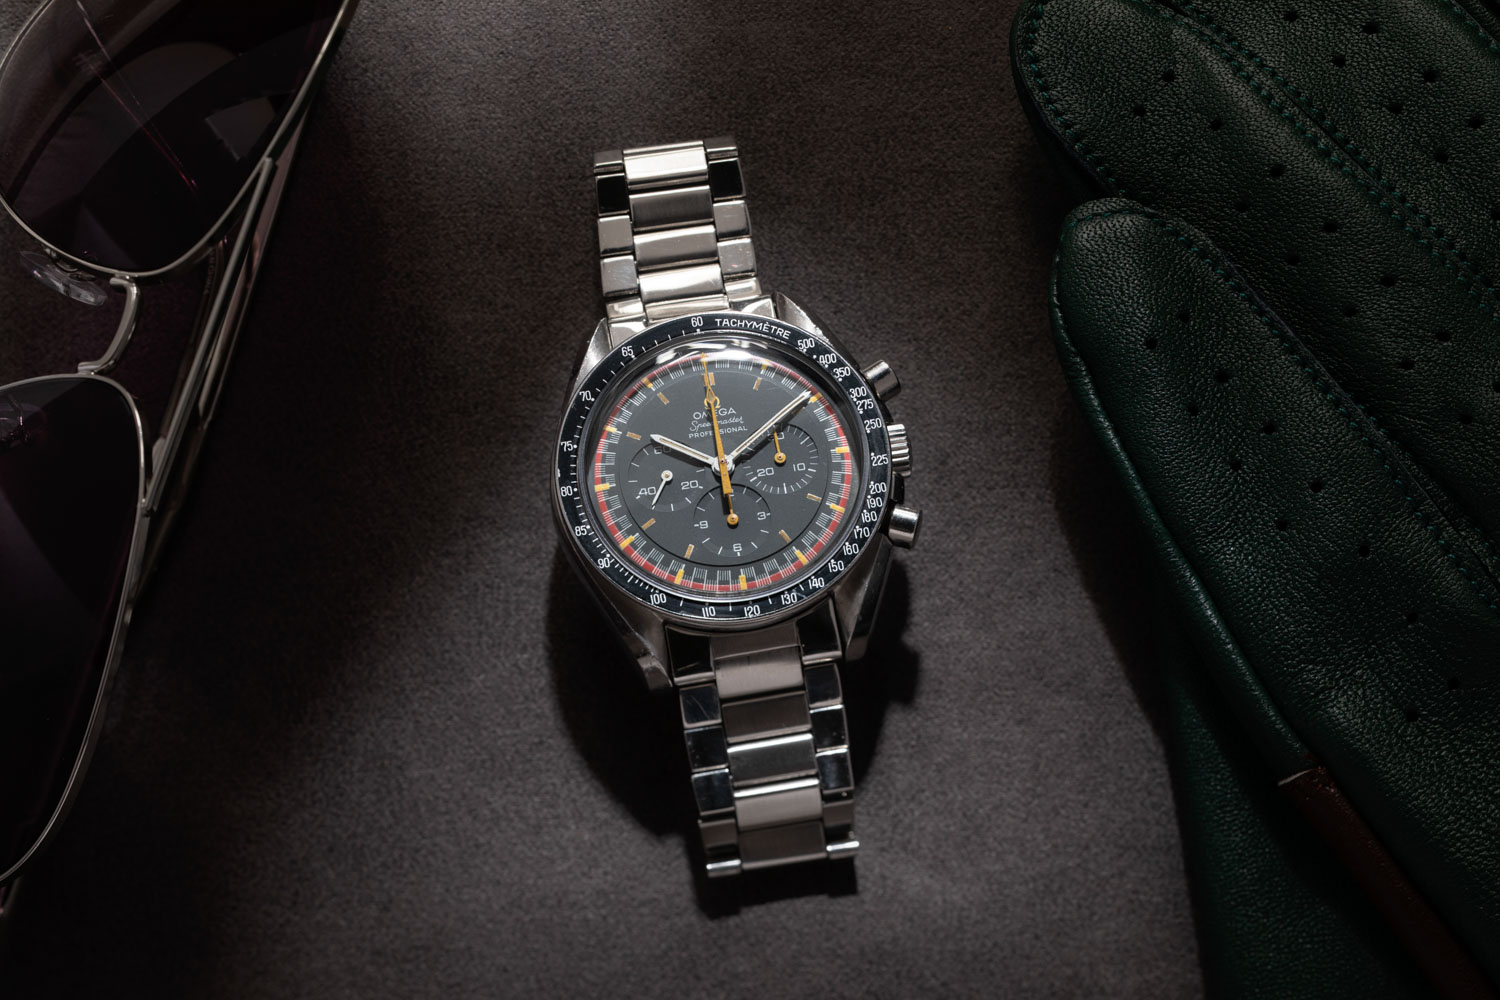 The Speedmaster Reference 145.022-69 with the Racing Dial and orange arrow-tipped central chrono hand (©Revolution)